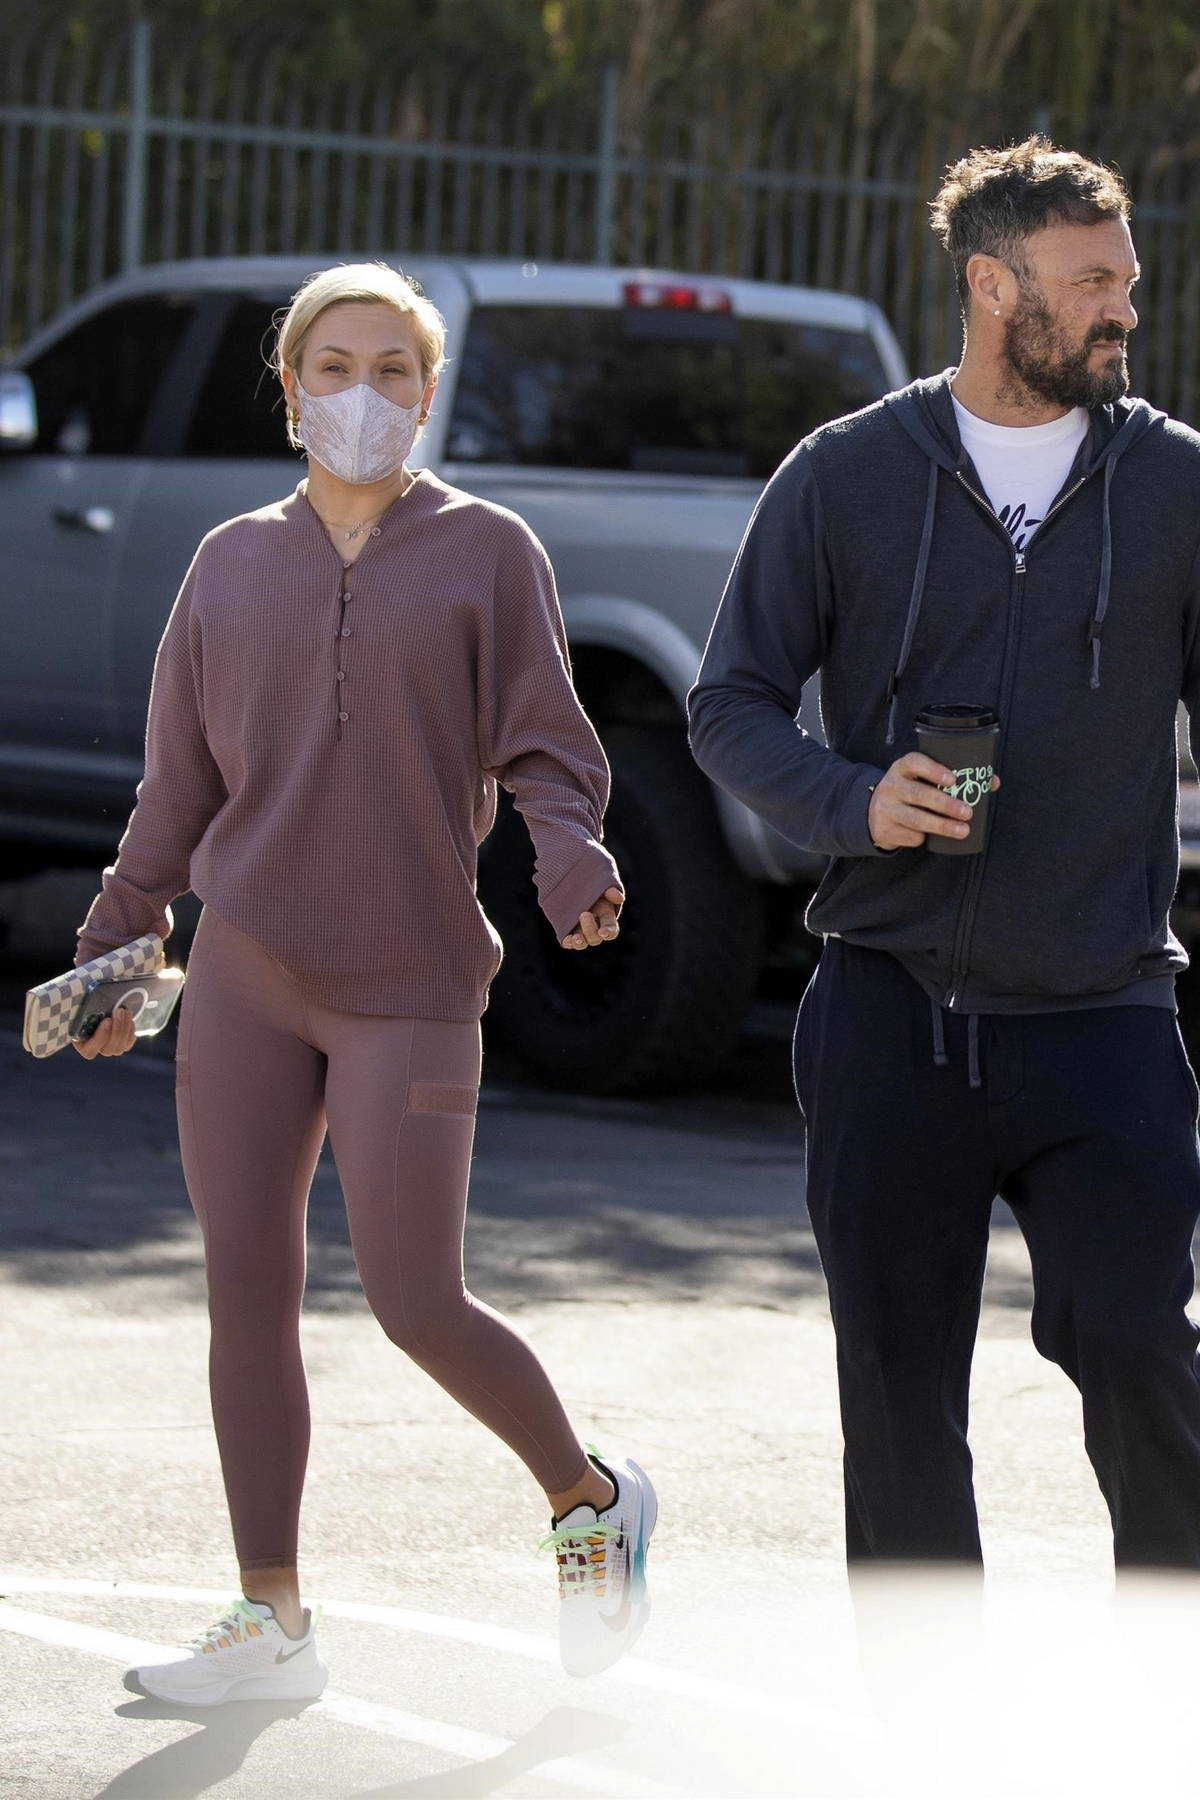 Sharna Burgess and Brian Austin Green seen leaving 10 Speed coffee together in Calabasas, California